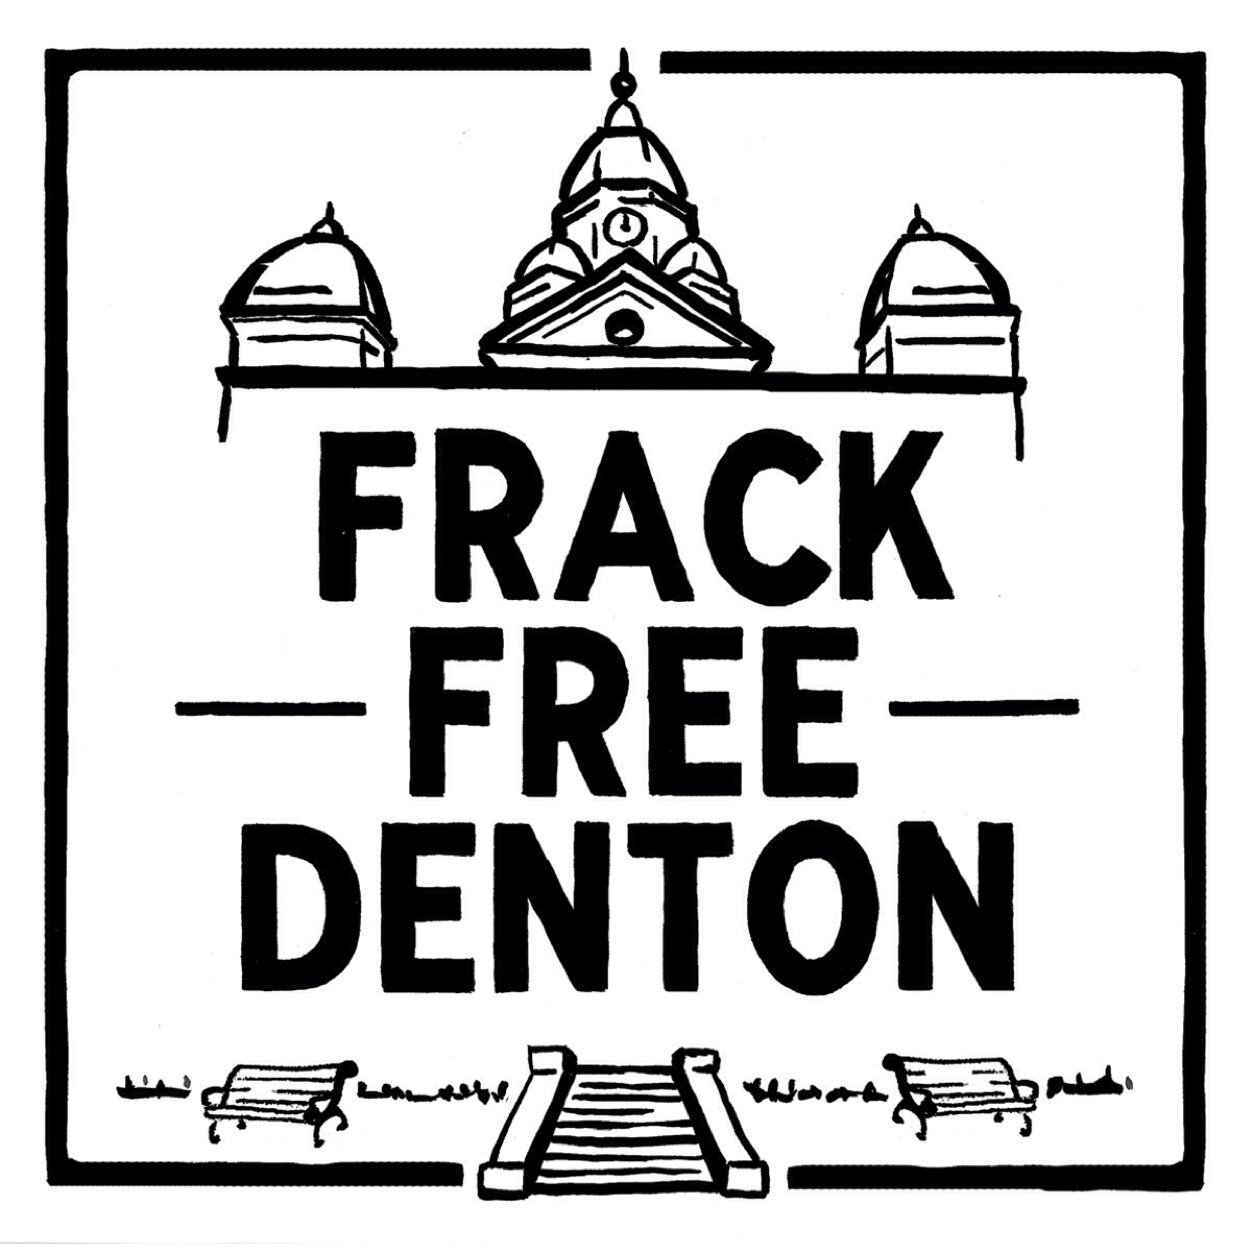 Political Action in Environmental Social Movements - This project traces a movement to ban hydraulic fracturing, or fracking, in Denton, Texas. Located on the Barnett Shale, one of the largest shales in and the location of the first fracking wells in the U.S., Denton is a conservative city that voted to ban fracking in a municipal election. We examine the ways a social movement framed risks associated with fracking to support a successful political outcome.